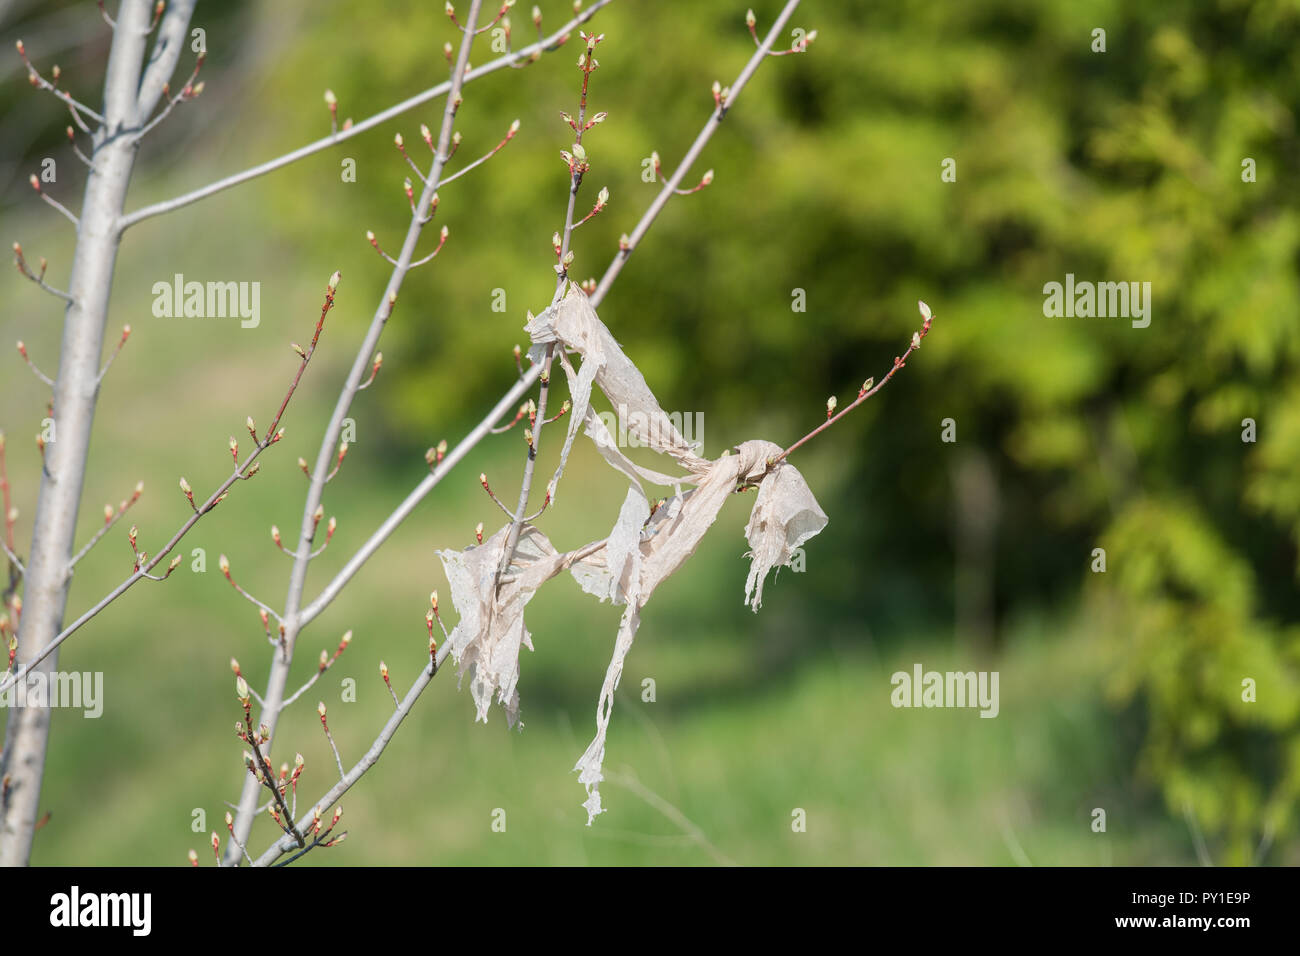 A plastic shopping bag slowly breaks down in the branches of a young tree. - Stock Image